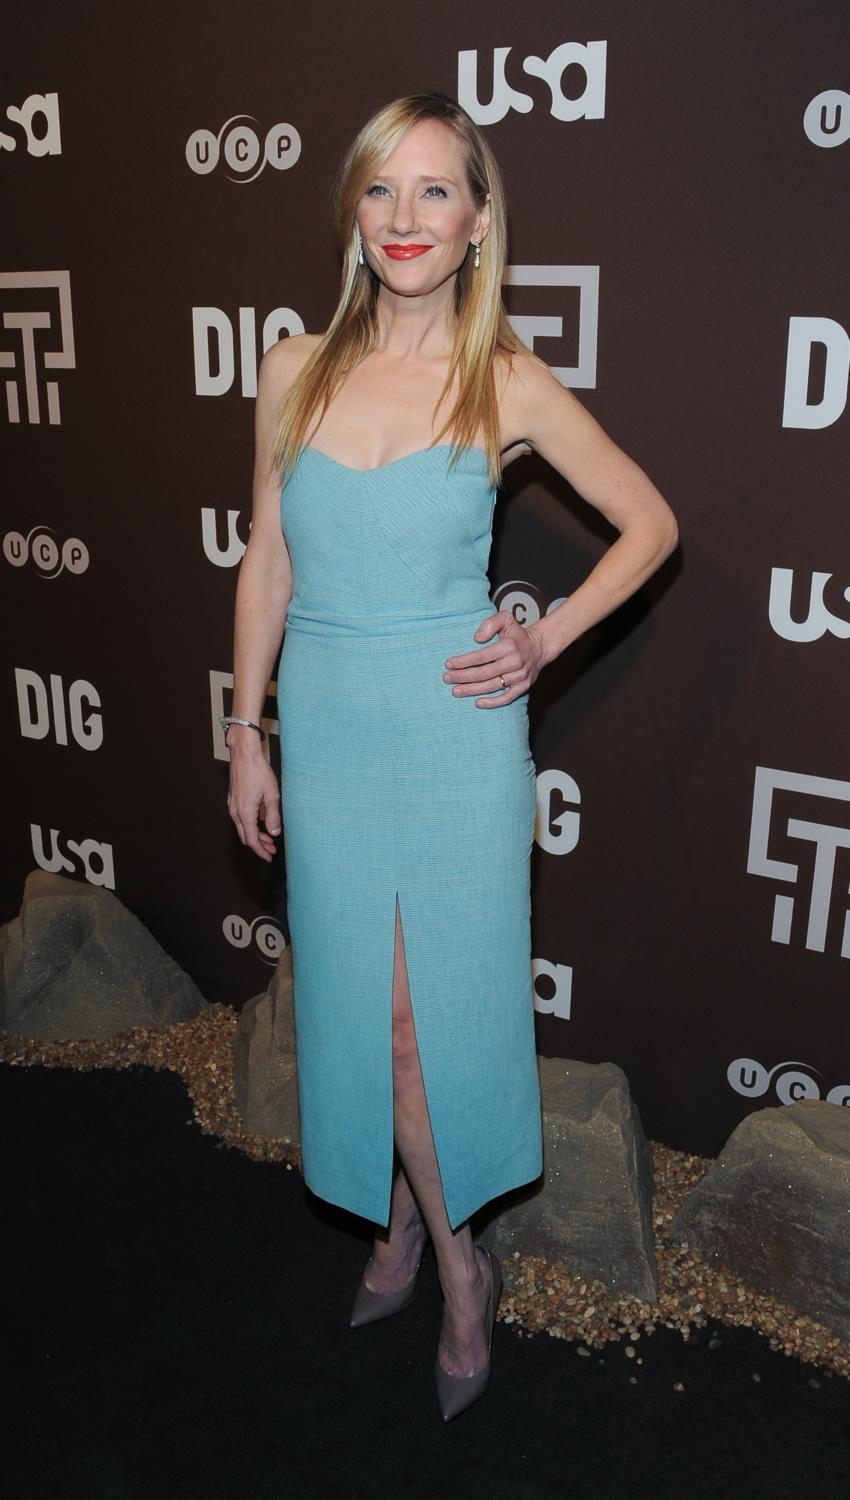 Anne Heche and Jason Issac at Dig Series New York Premiere